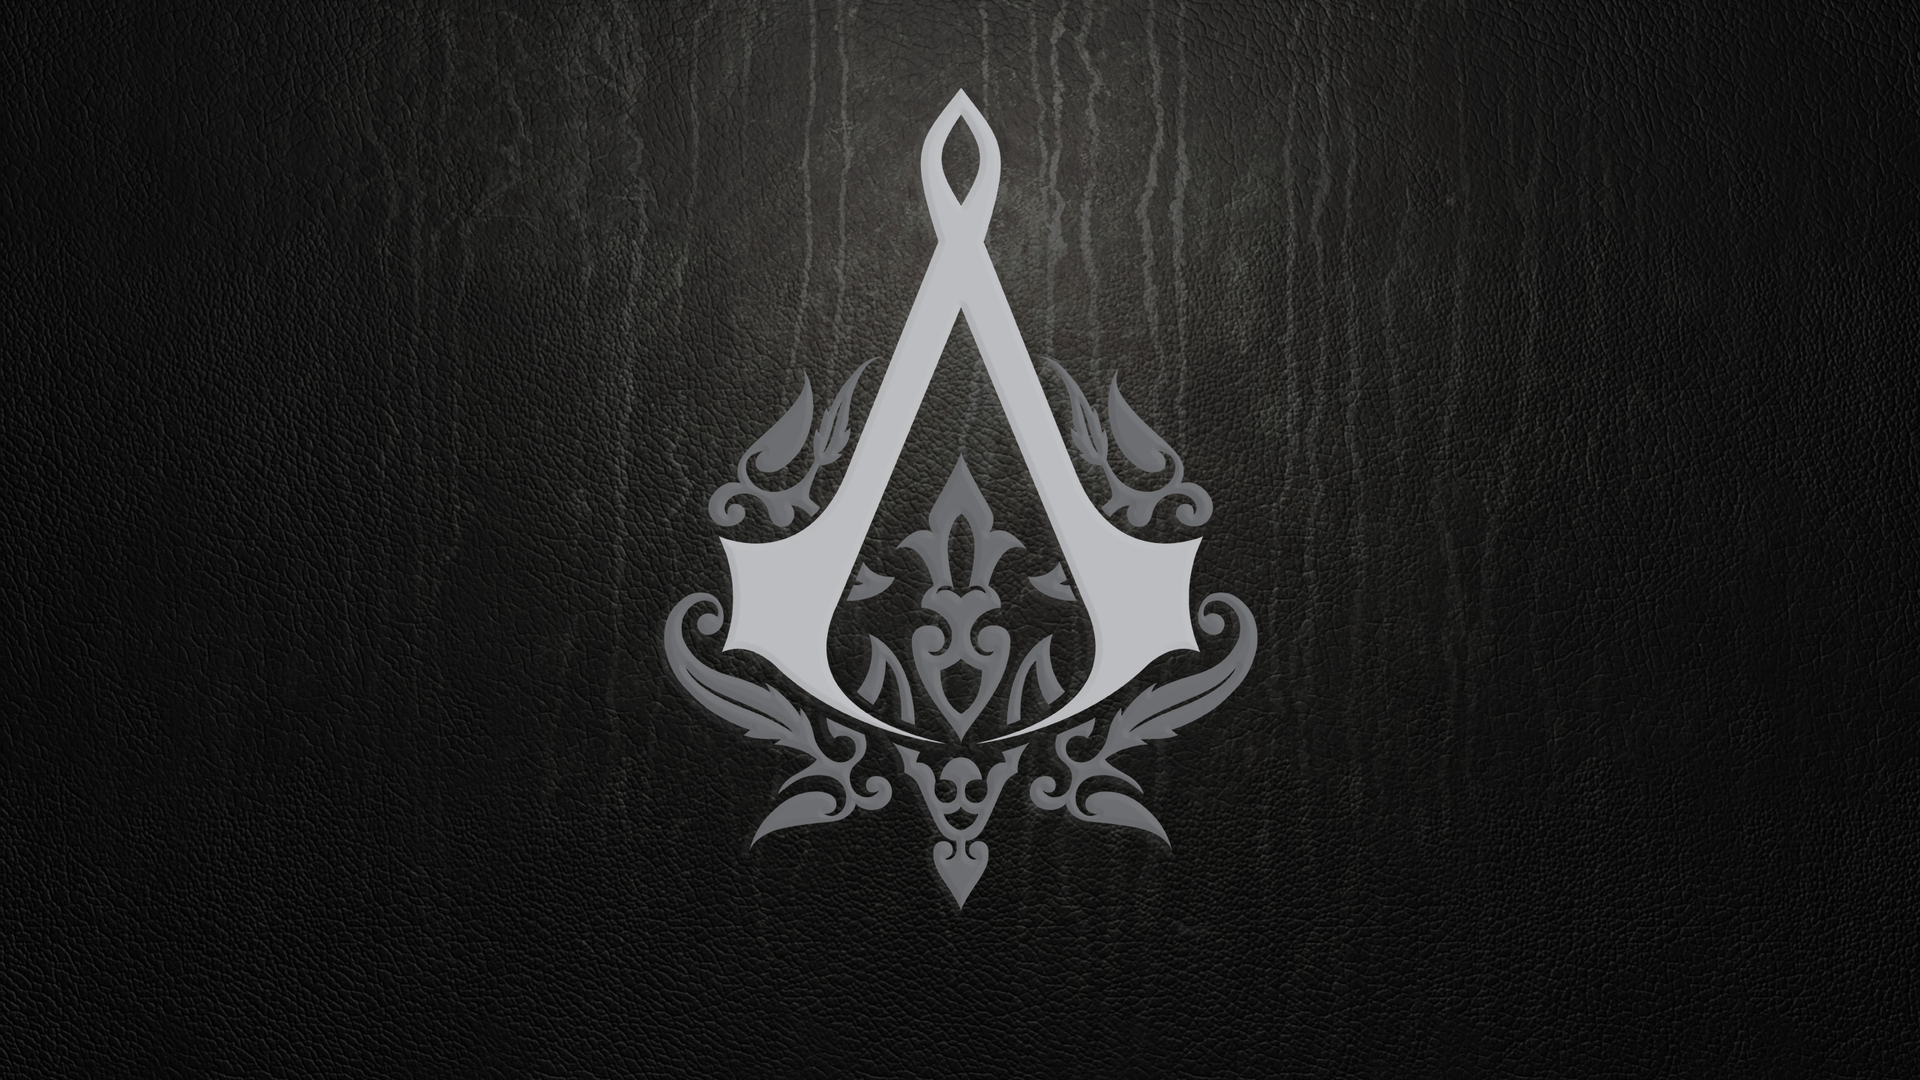 Free Download Assassins Creed Logo Hd Wallpaper Assassins Creed Logo Wallpaper 1920x1080 For Your Desktop Mobile Tablet Explore 40 Assassin S Creed Brotherhood Wallpaper Hd Assassin S Creed Hd Wallpapers 1080p